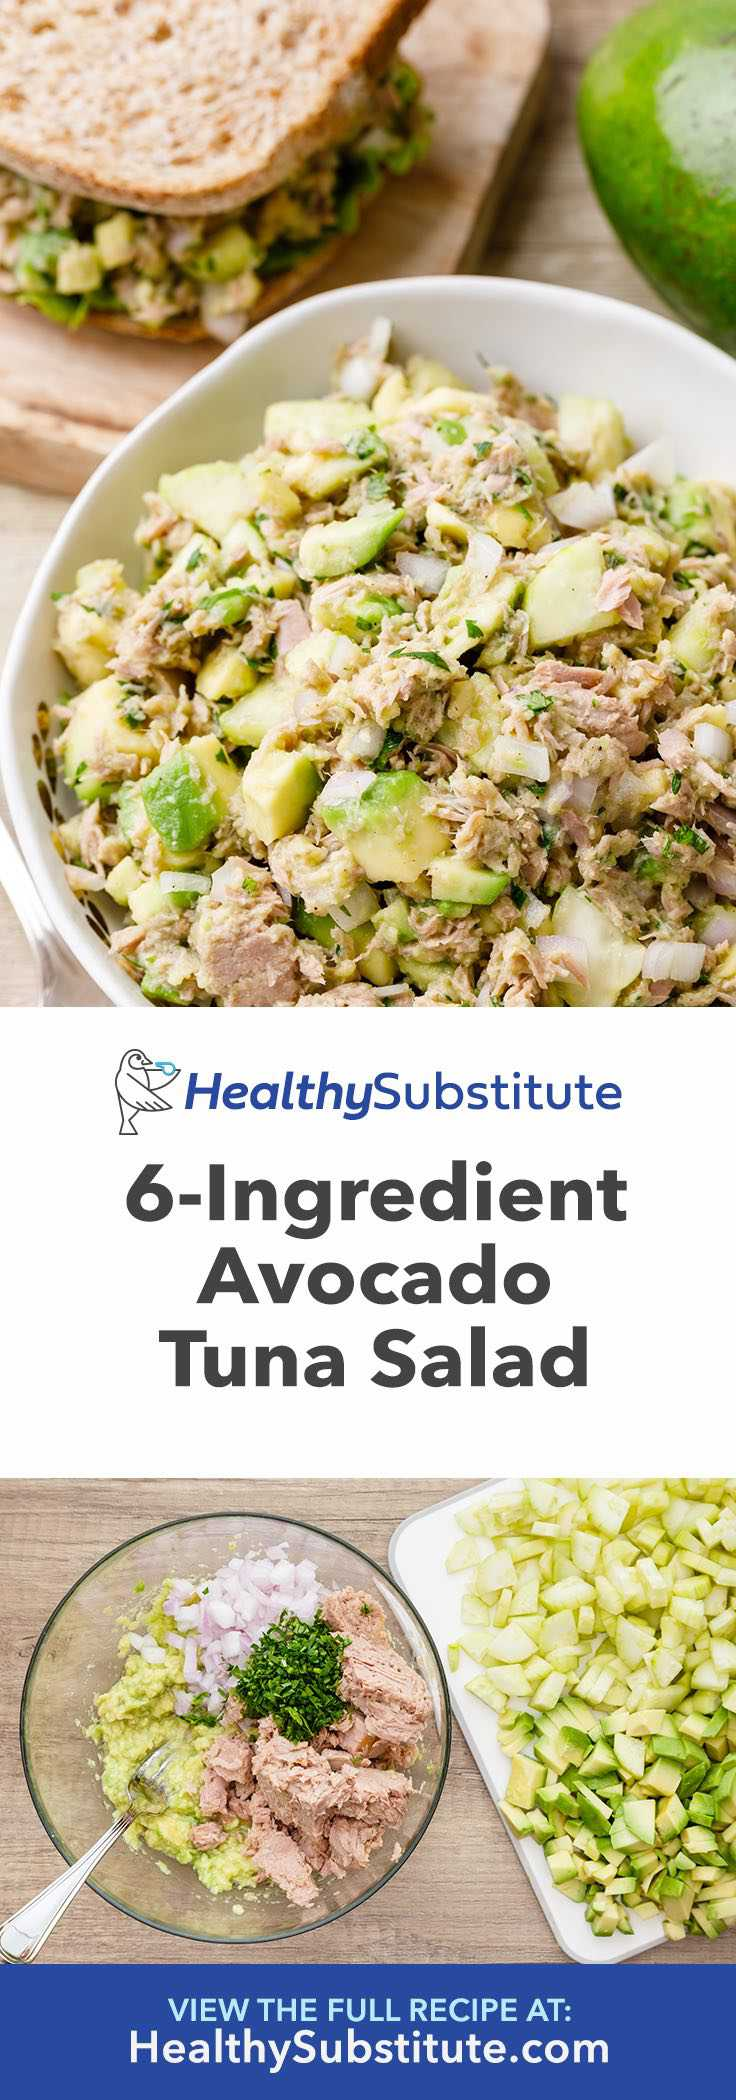 You need to try this avocado tuna salad!